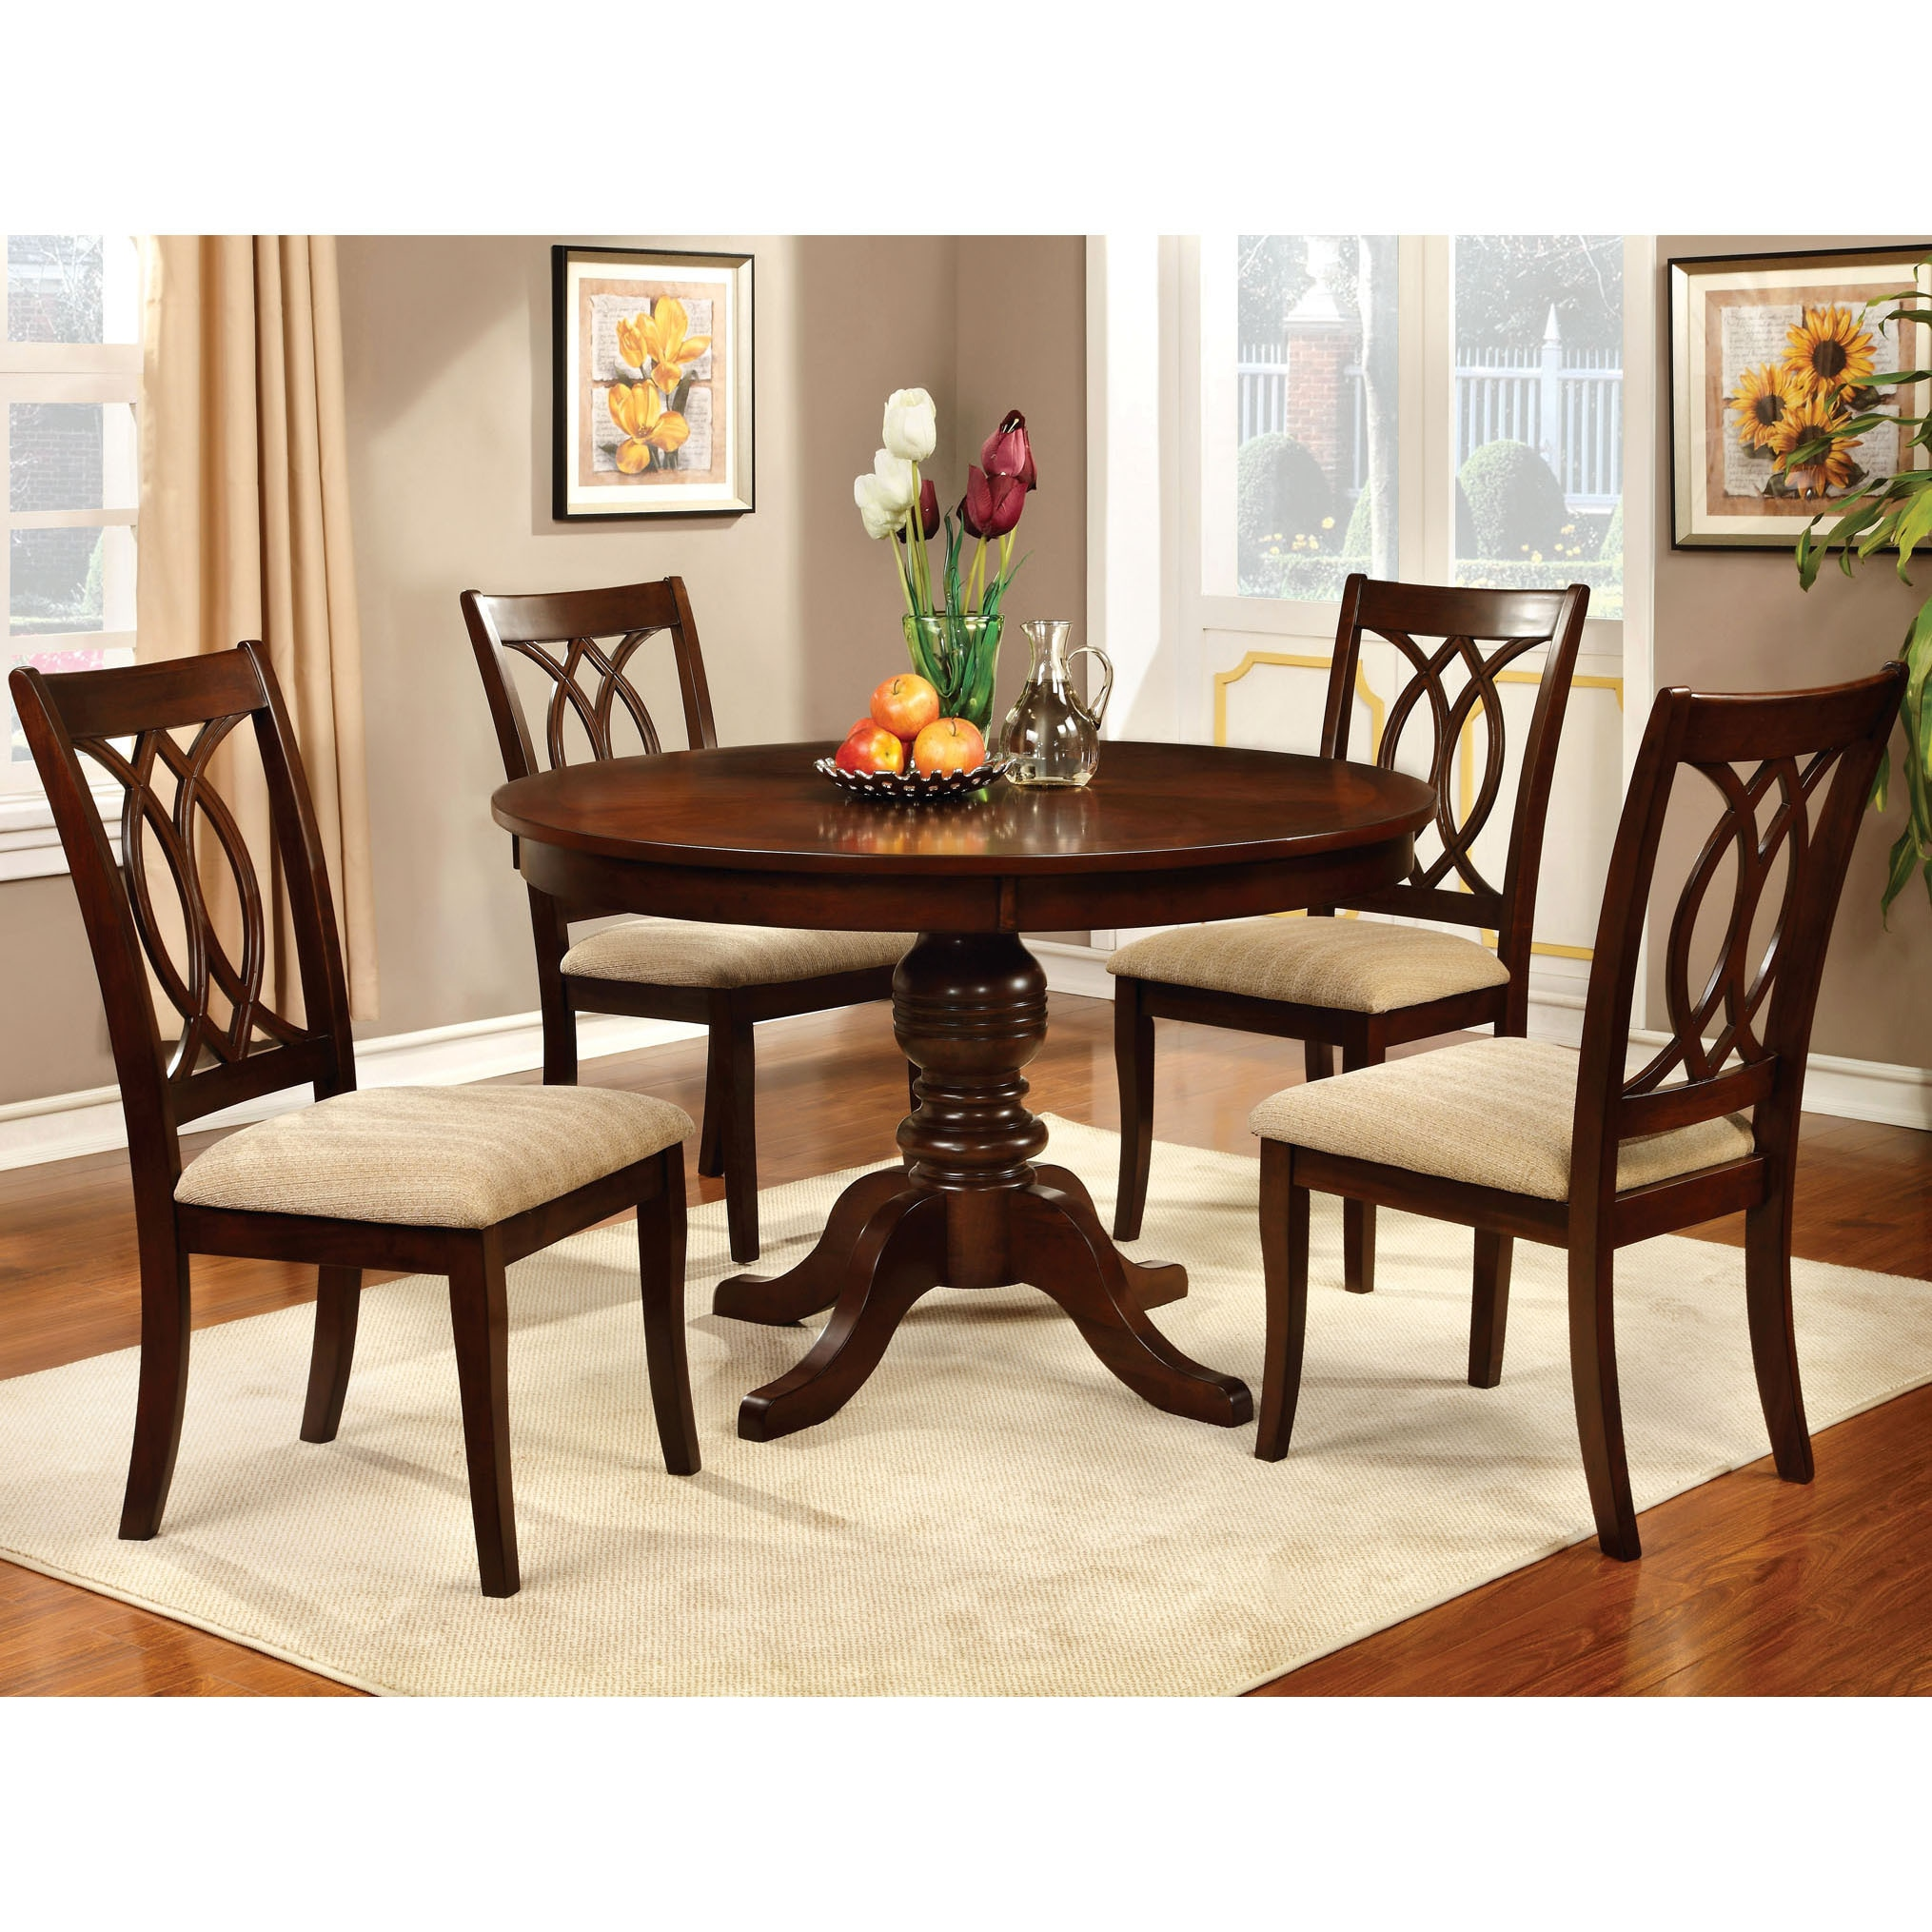 Cerille 5 Piece Round Formal Dining Set By Foa